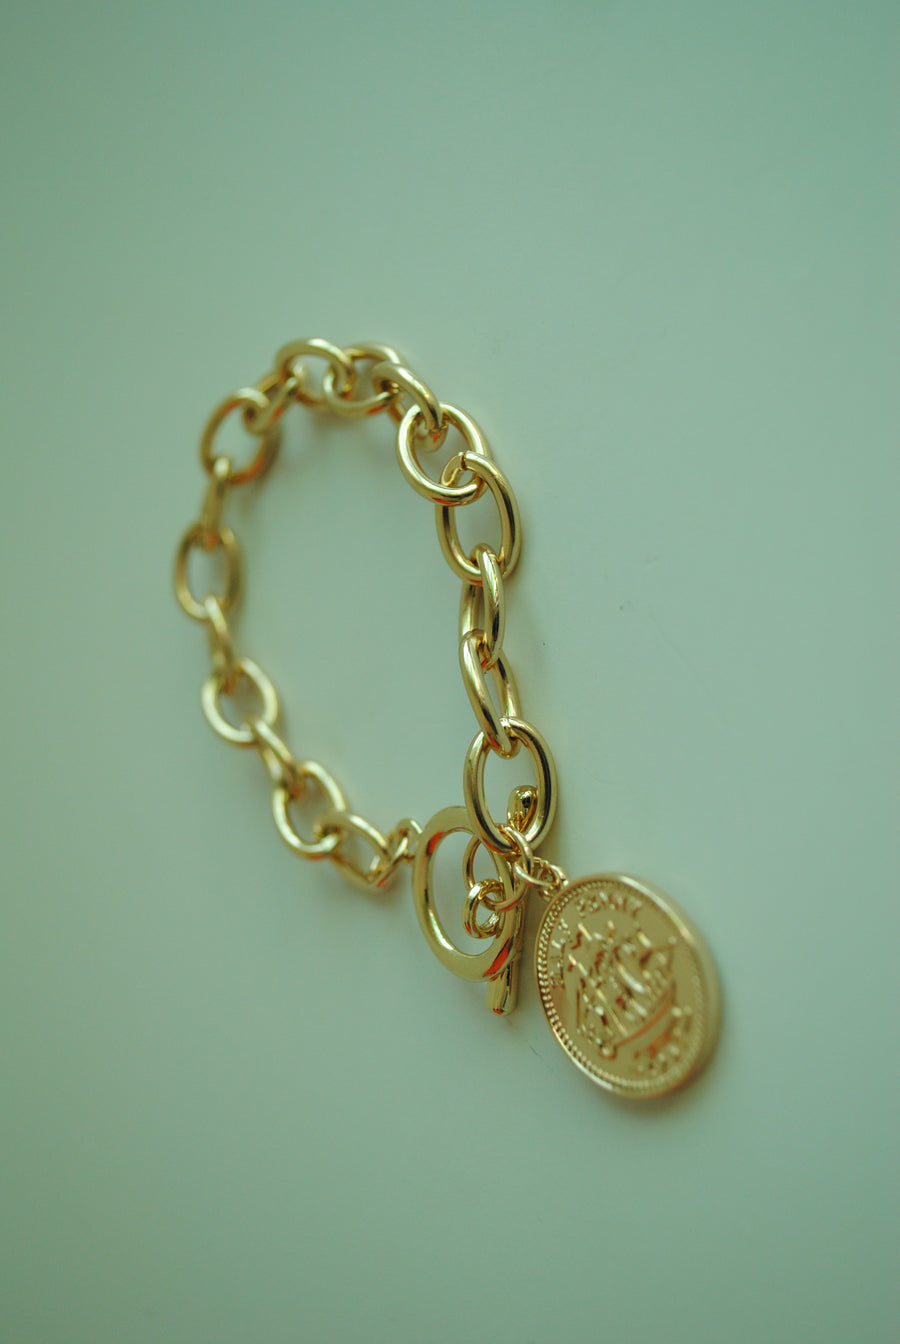 Mantra Pakistan Coin & Chain Bracelet | ACCESSORIES